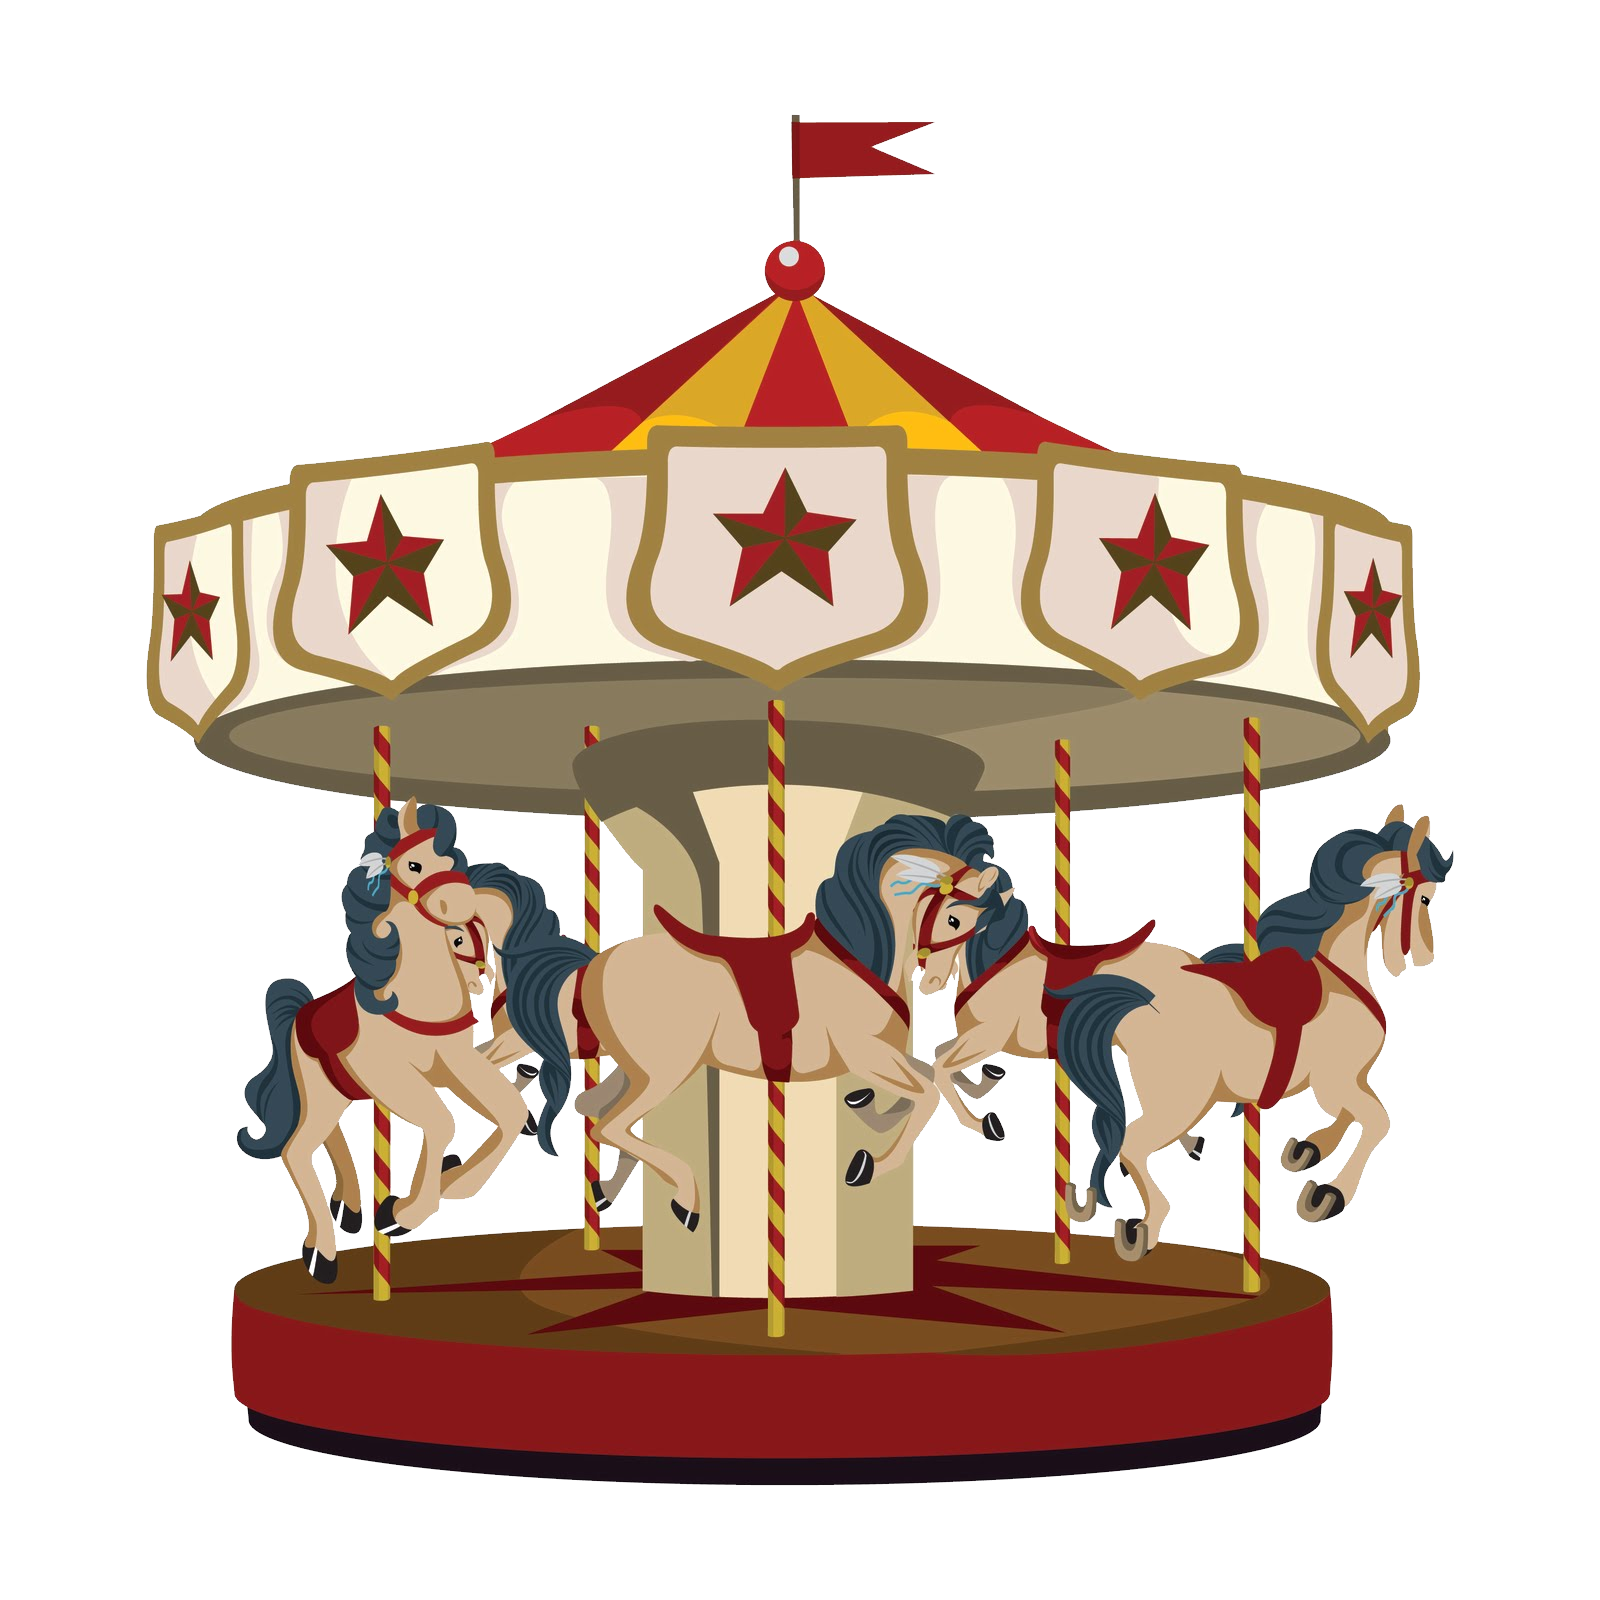 Carousel PNG Photo Image